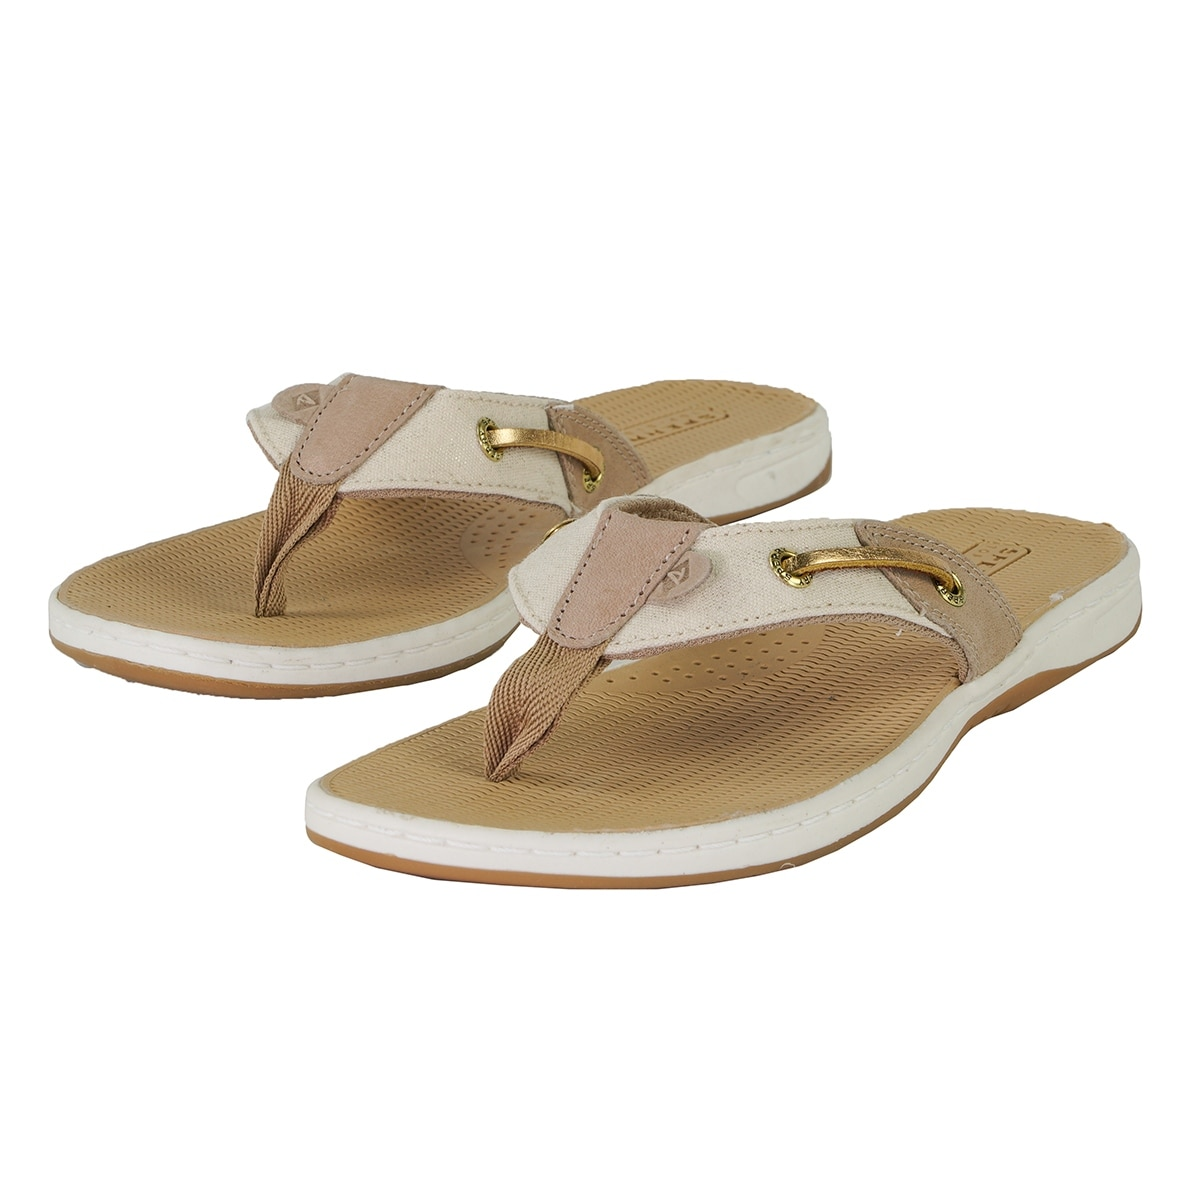 f486f498fee460 Shop Sperry Women s Seafish Stripe Sandal - LINEN - Free Shipping On Orders  Over  45 - Overstock - 25715605